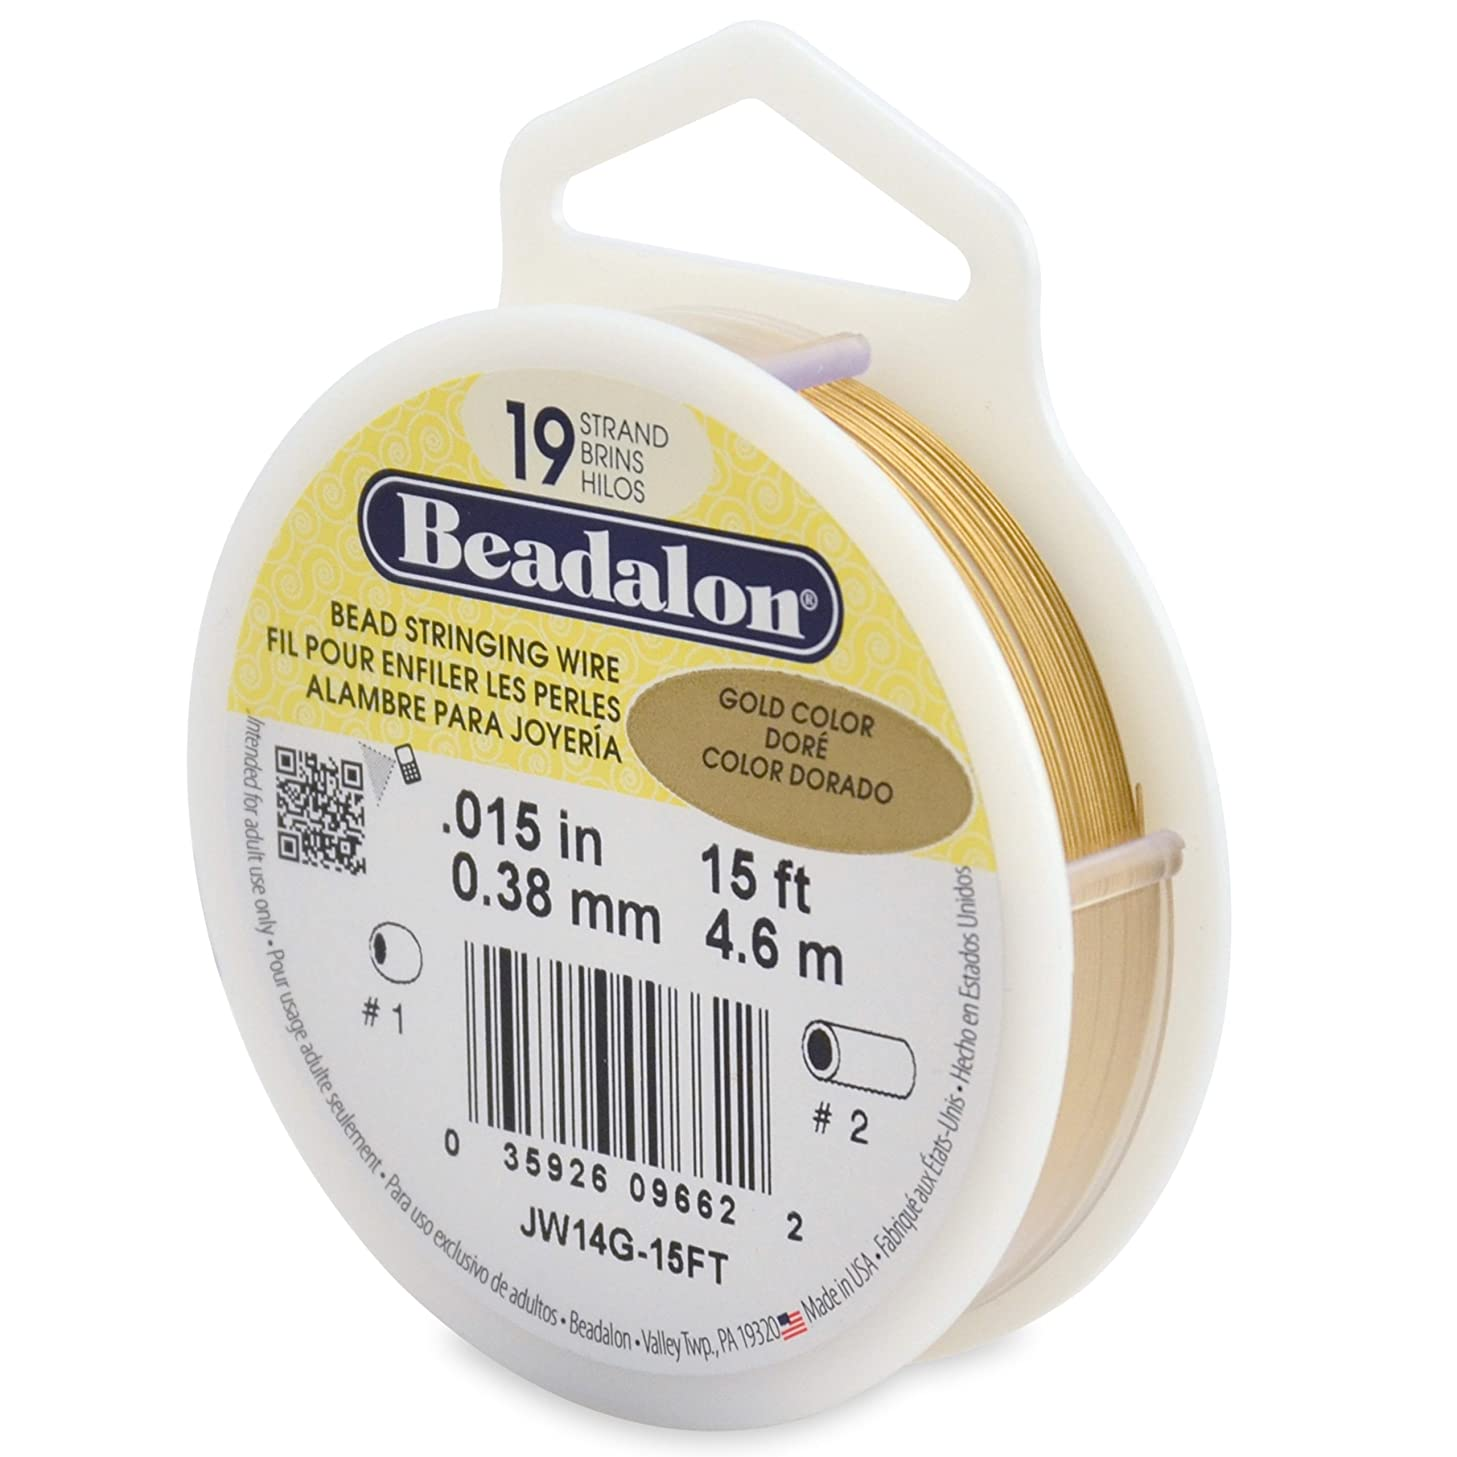 Beadalon 19-Strand Bead Stringing Wire, 0.015-Inch, Gold Color, 15-Feet